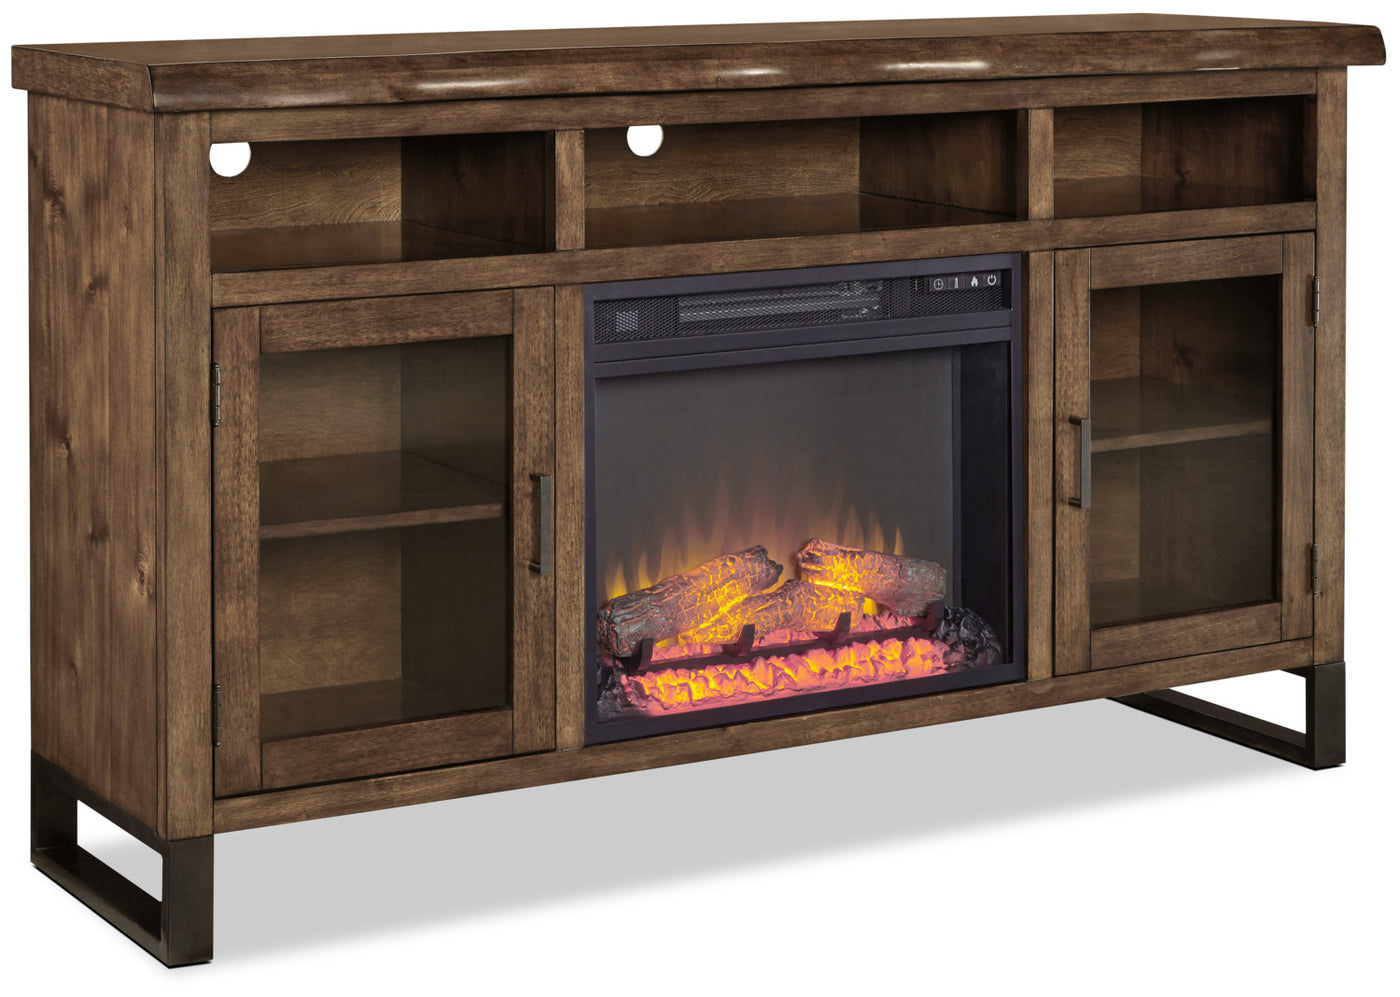 Esmarina 62 Tv Stand With Log Firebox The Brick